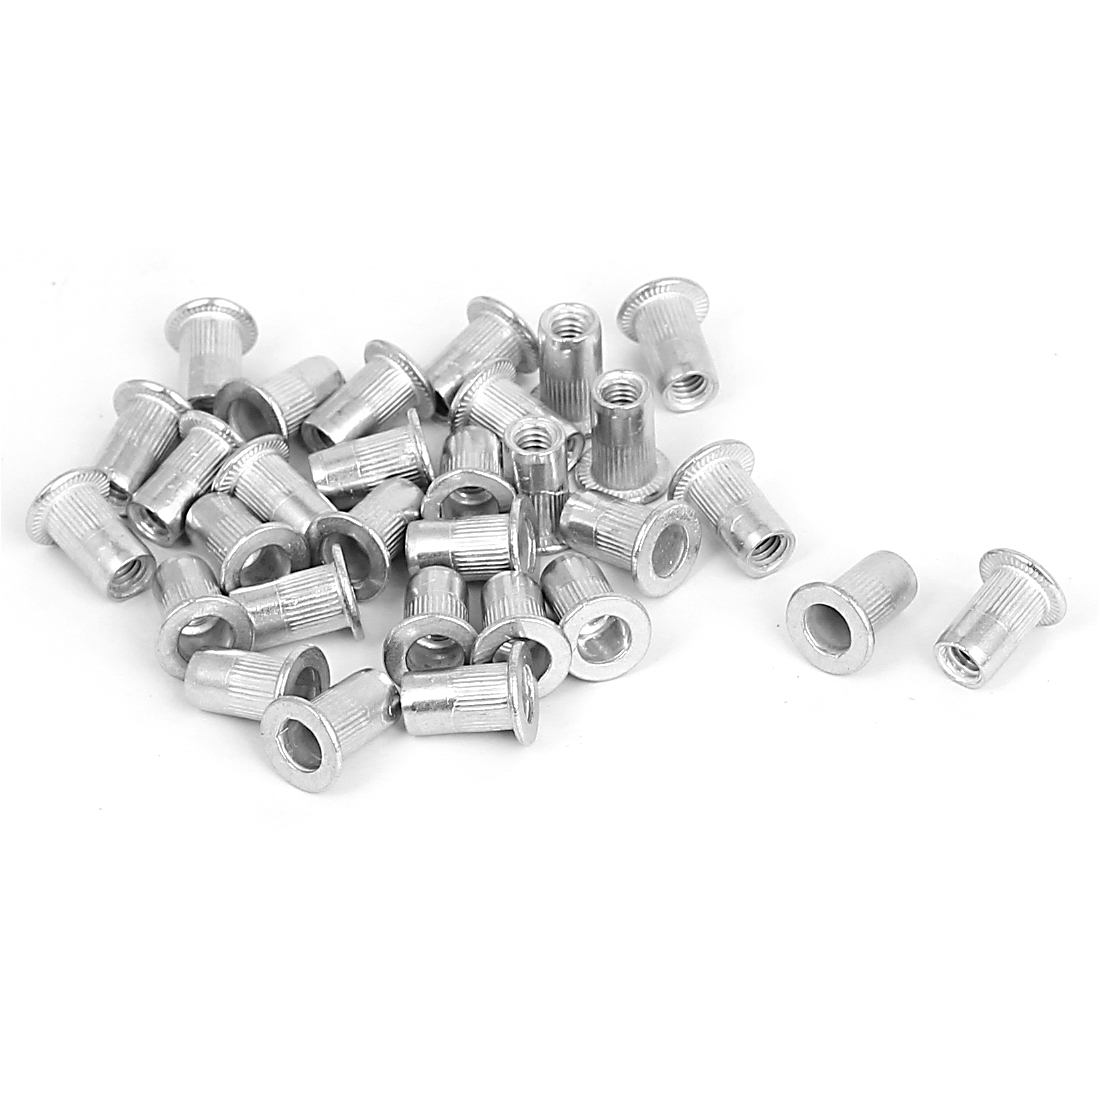 30 Pcs M4 Aluminum Countersunk Head Blind Nuts Open End Insert Nutserts